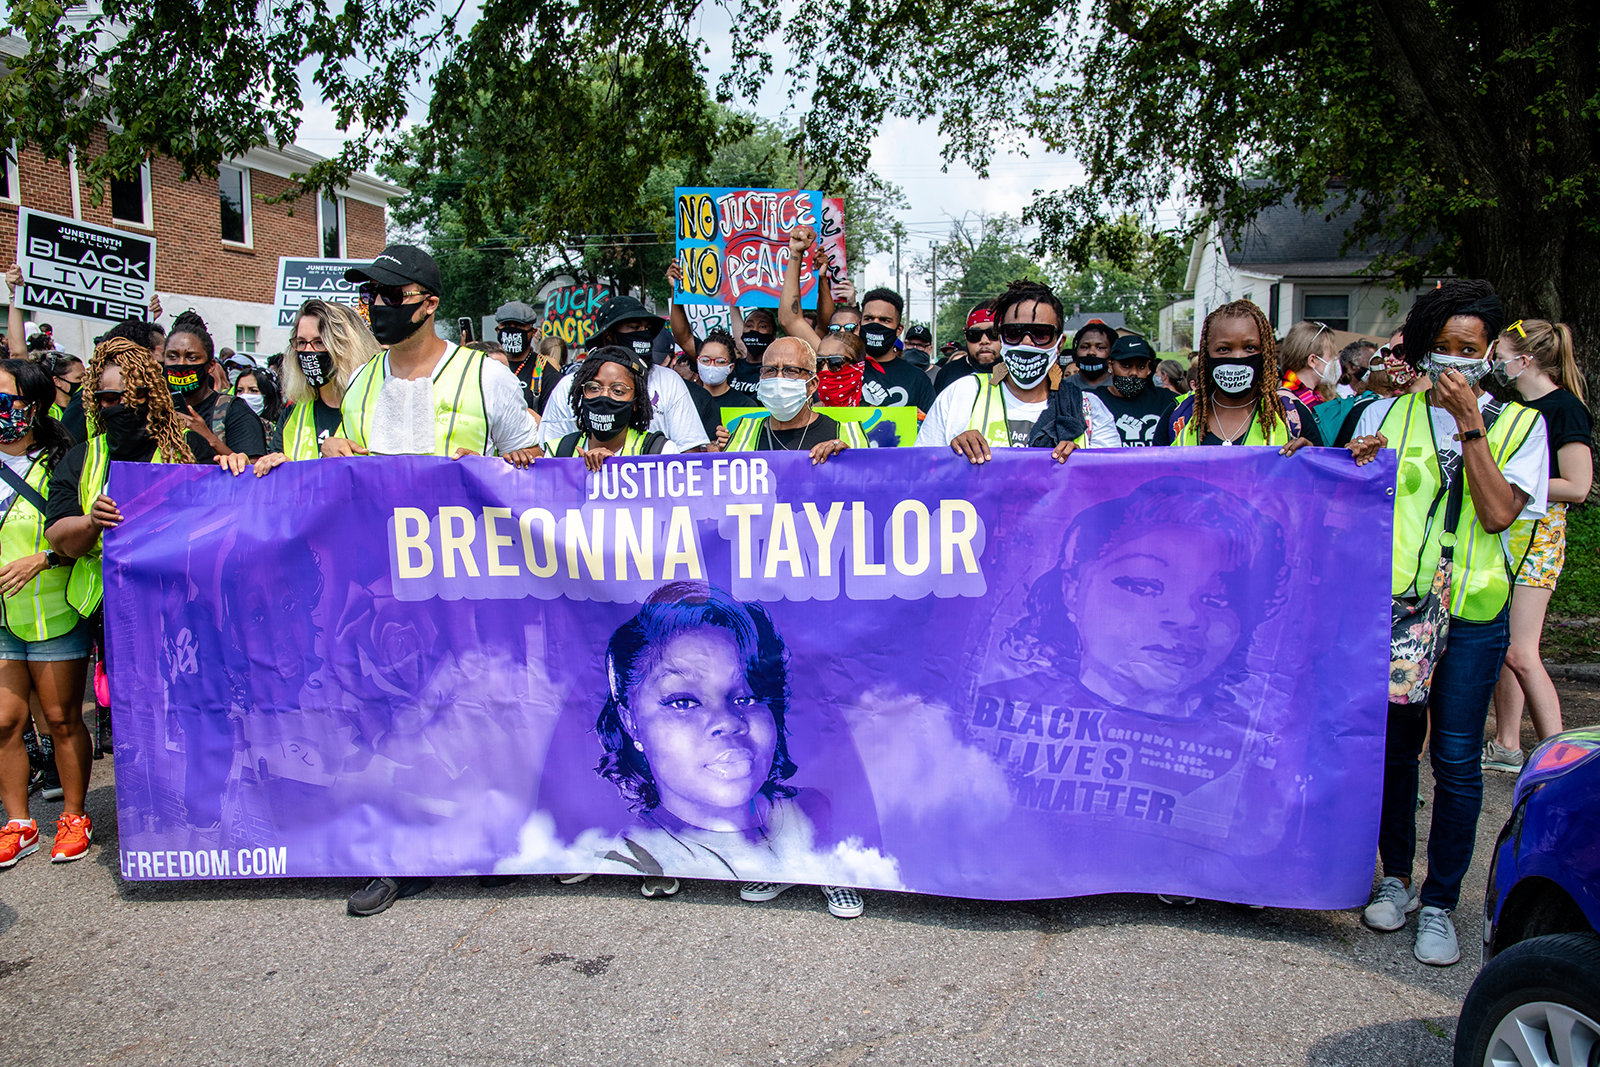 Six Louisville police officers under internal investigation for actions on night Breonna Taylor was killed